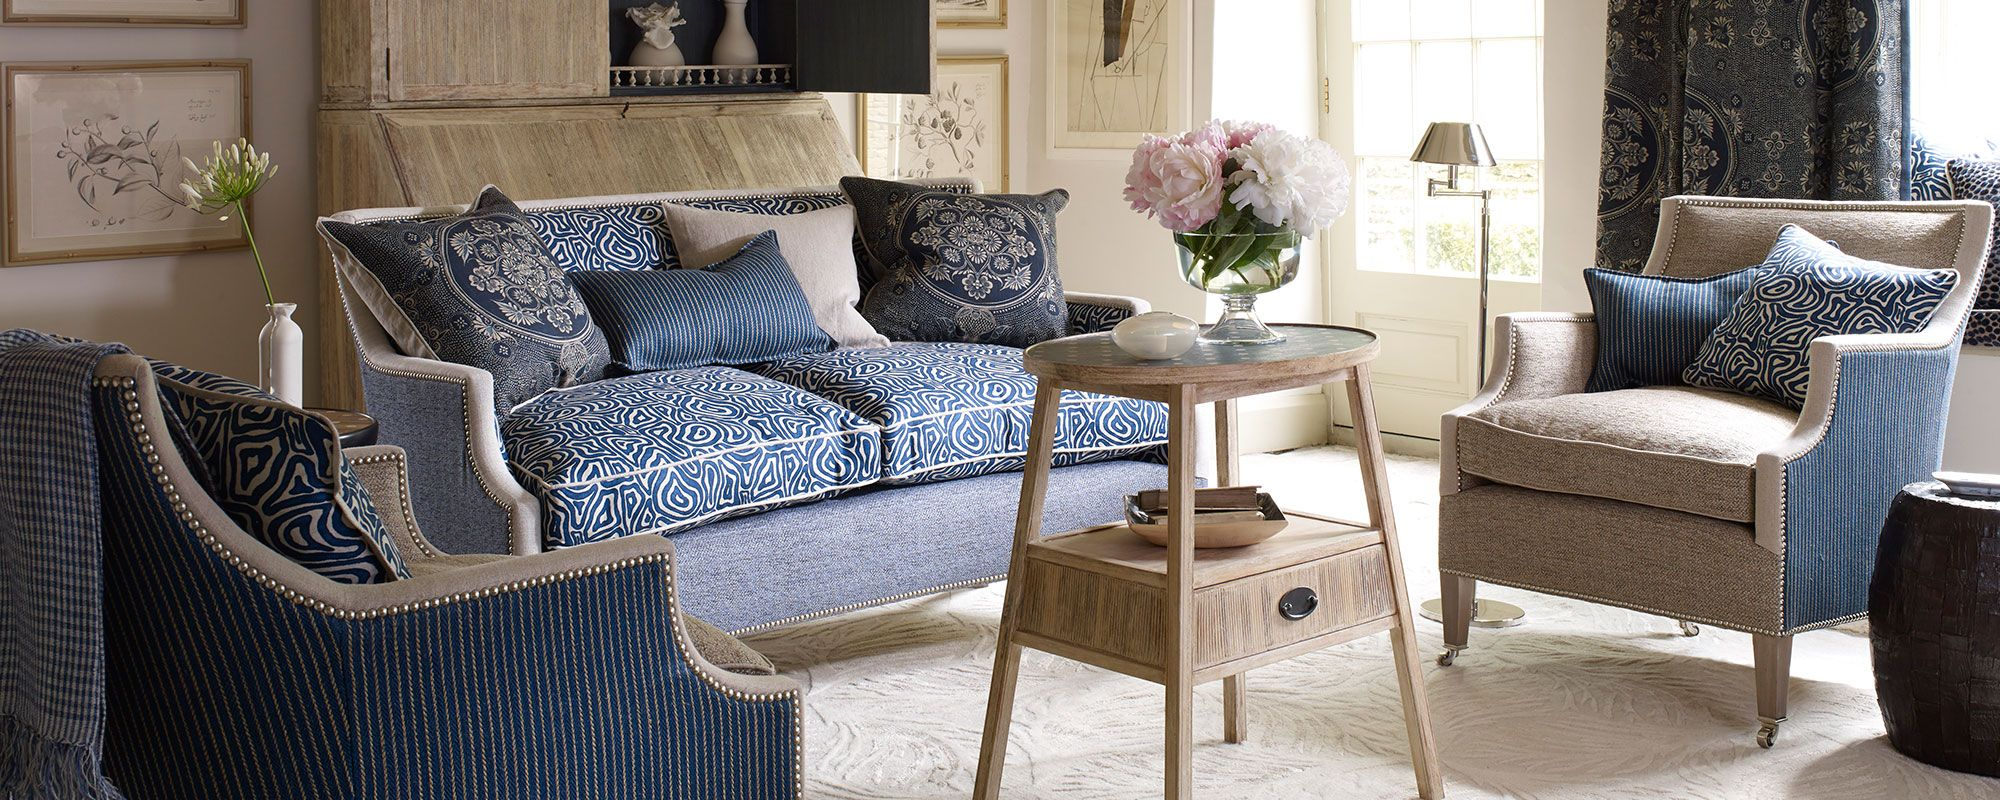 William Yeoward Upholstery